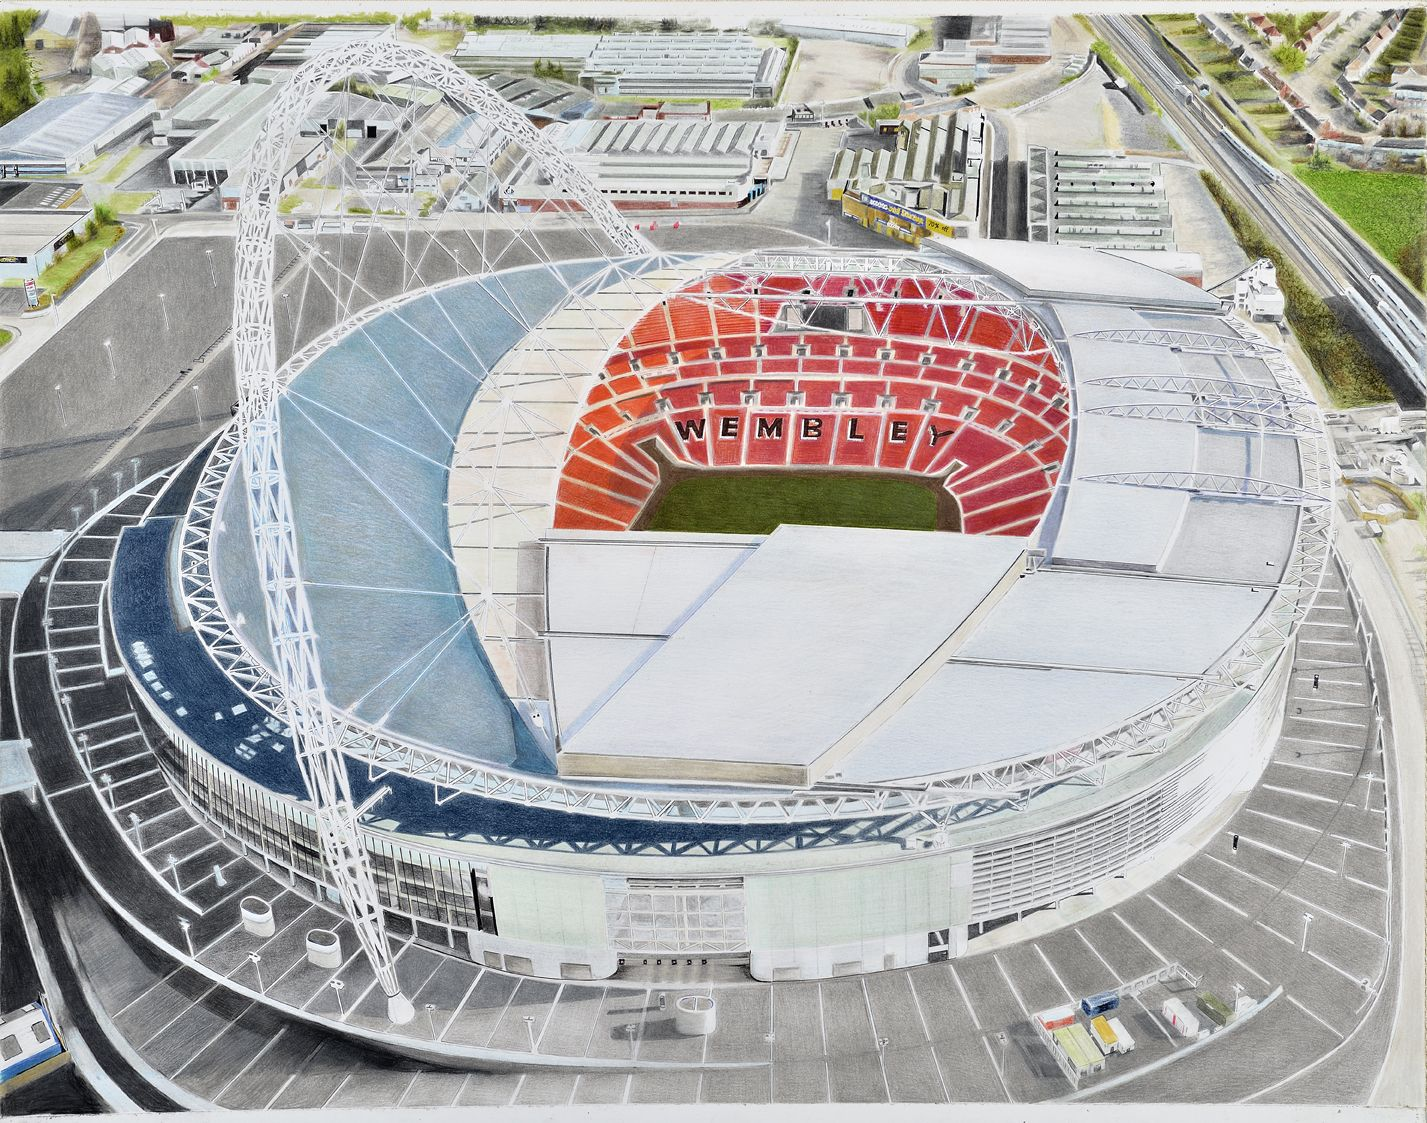 Wembley stadium home of the fa england national football team wembley stadium home of the fa england national football team by brian casey sciox Gallery